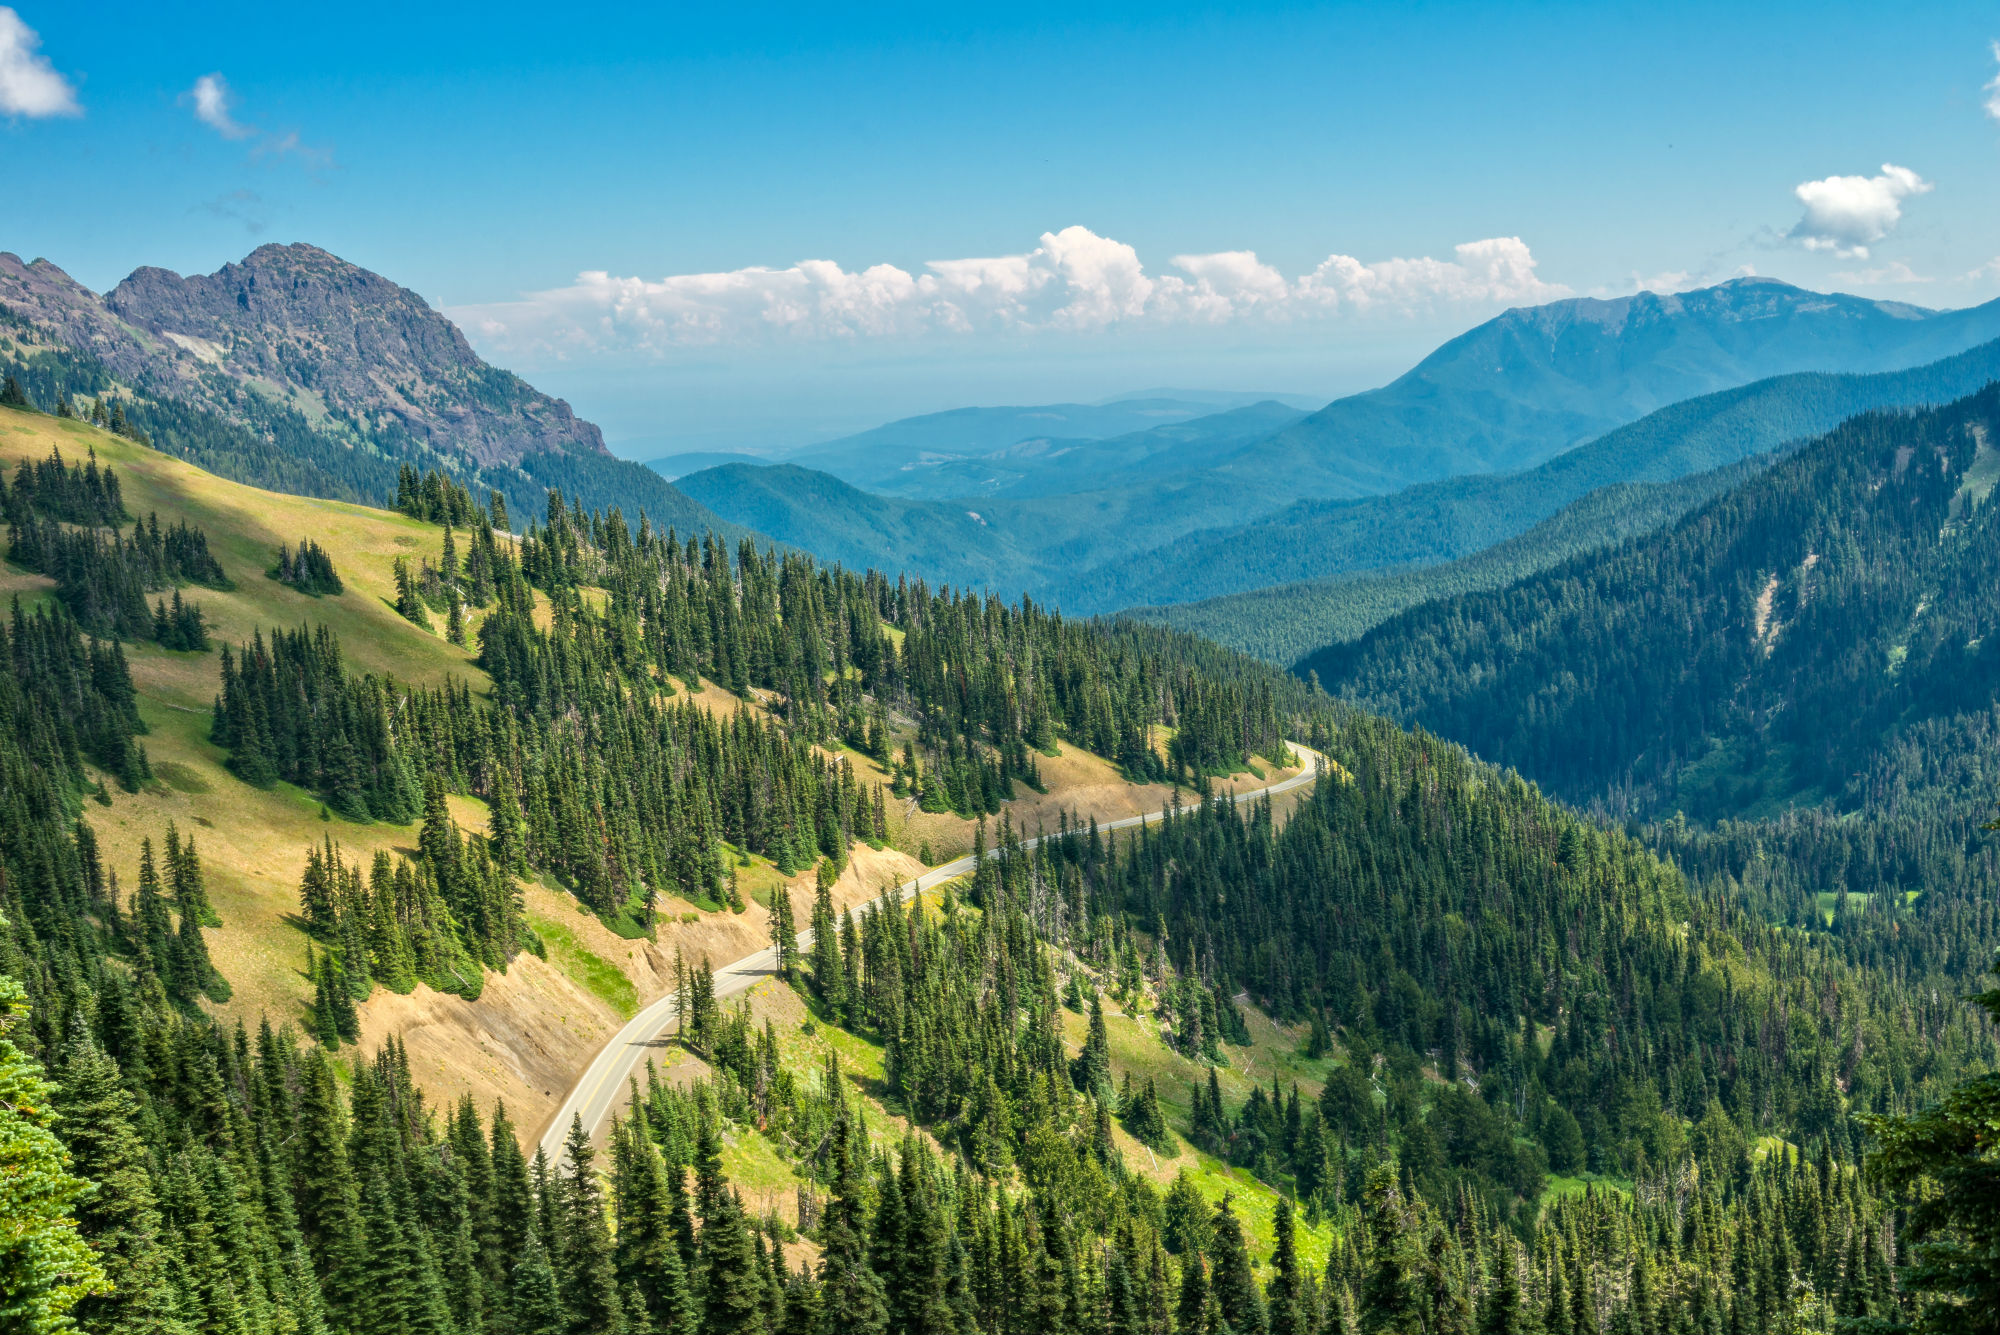 The Olympic National Park